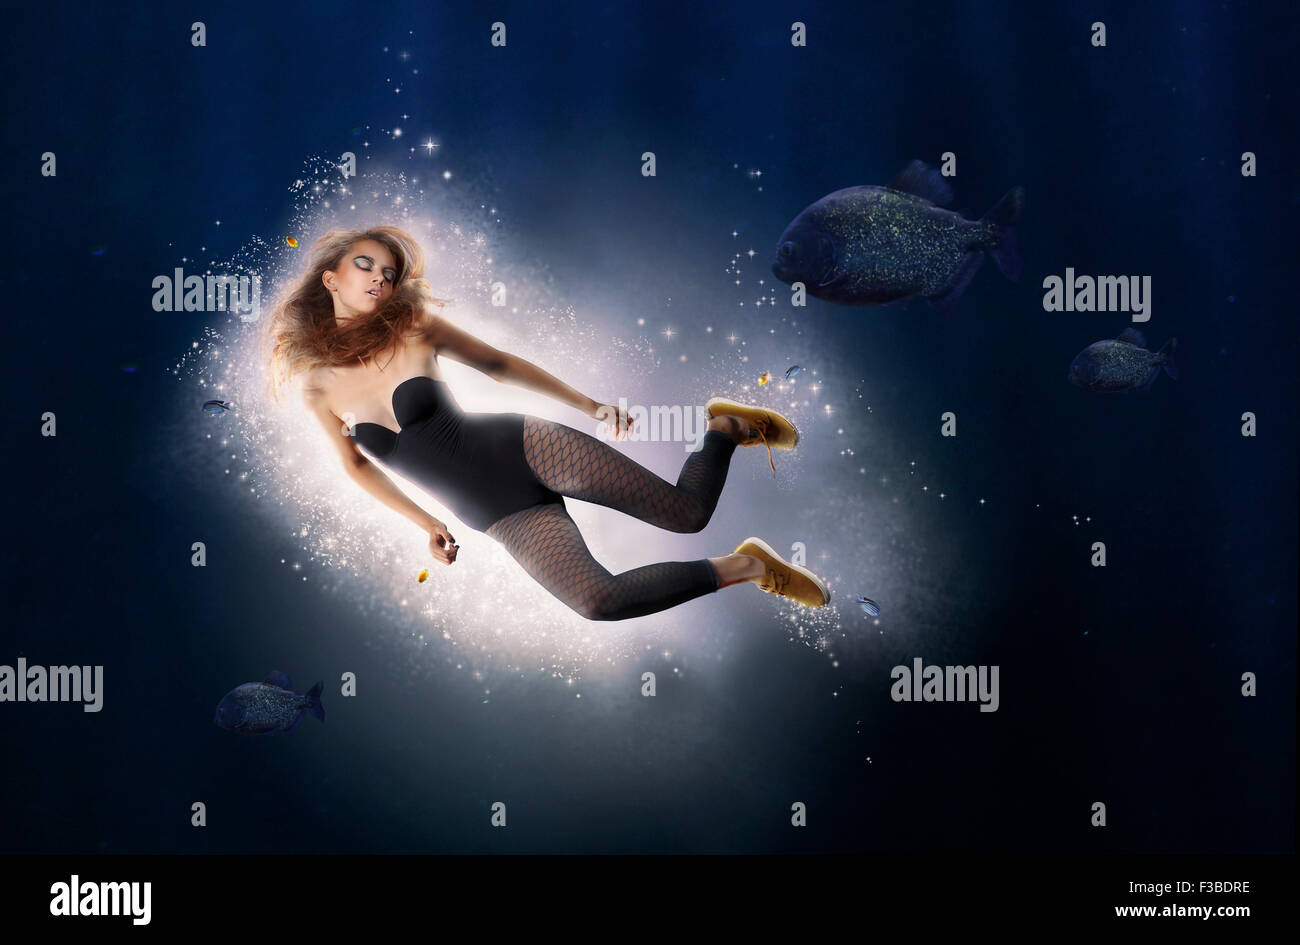 Creativity. Fantasy. Woman is Diving in Water - Stock Image